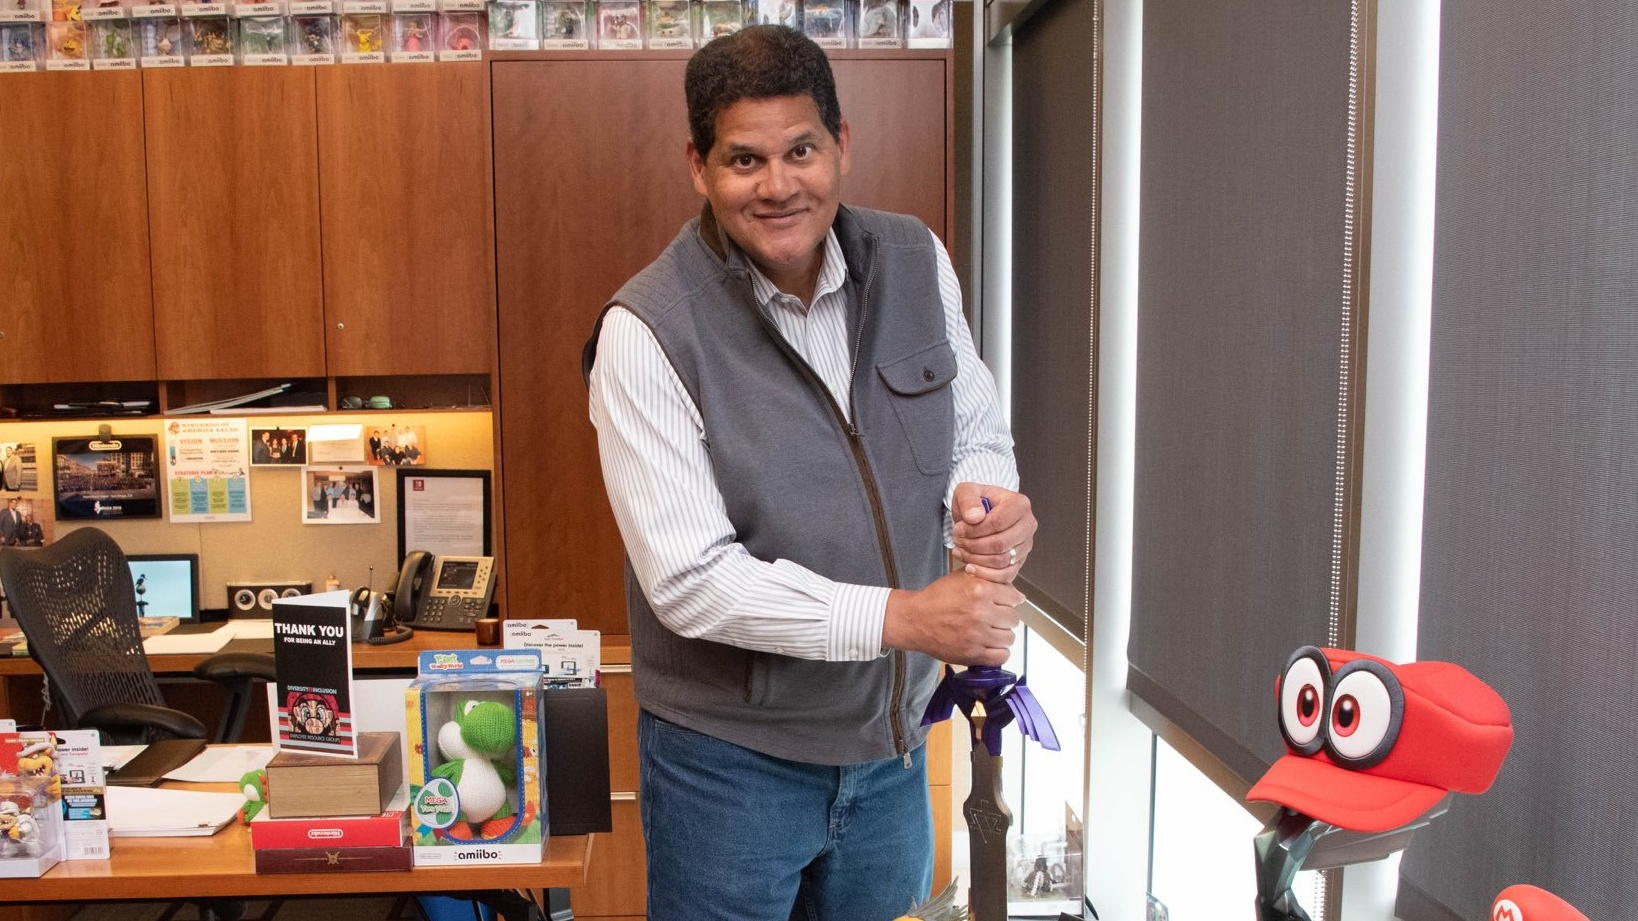 Reggie Fils-Aimé To Aid Mentoring Of Underprivileged Students With New York Organisation